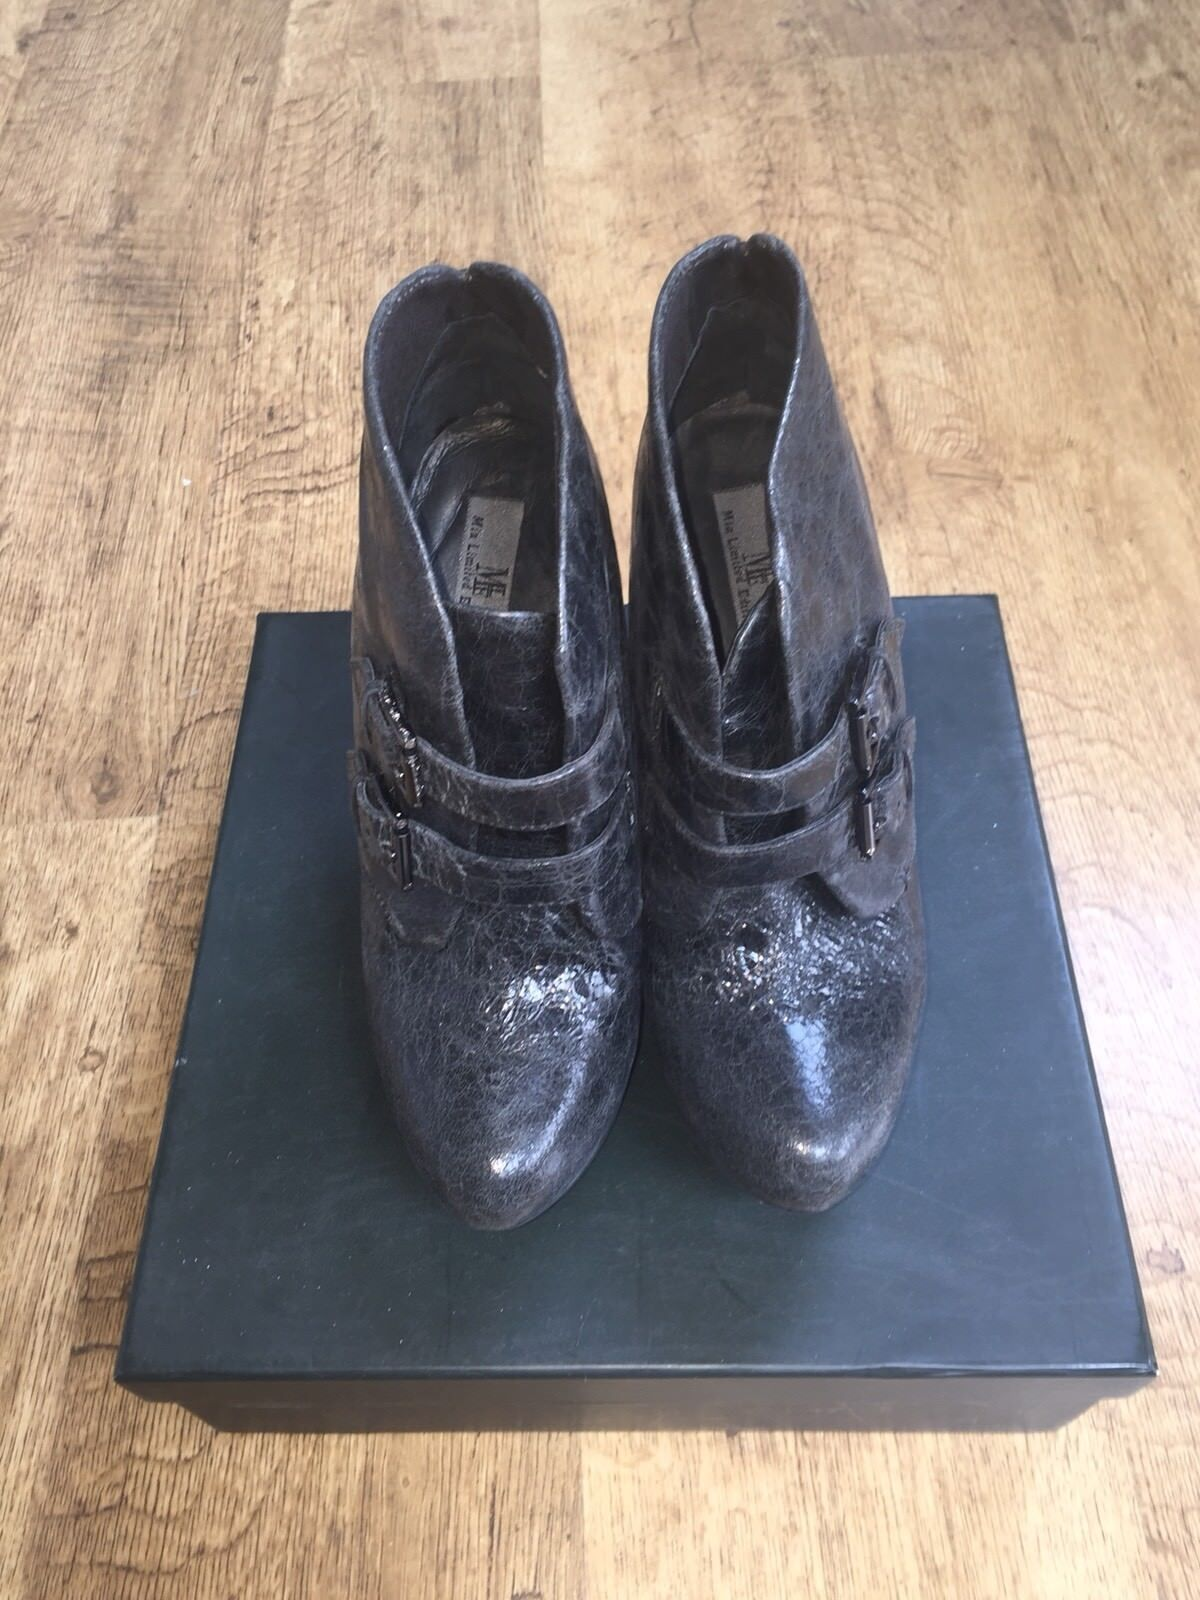 BNIB MIA LIMITED EDITION BLACK 100% PATENT LEATHER BOOTS, UK SIZE 6